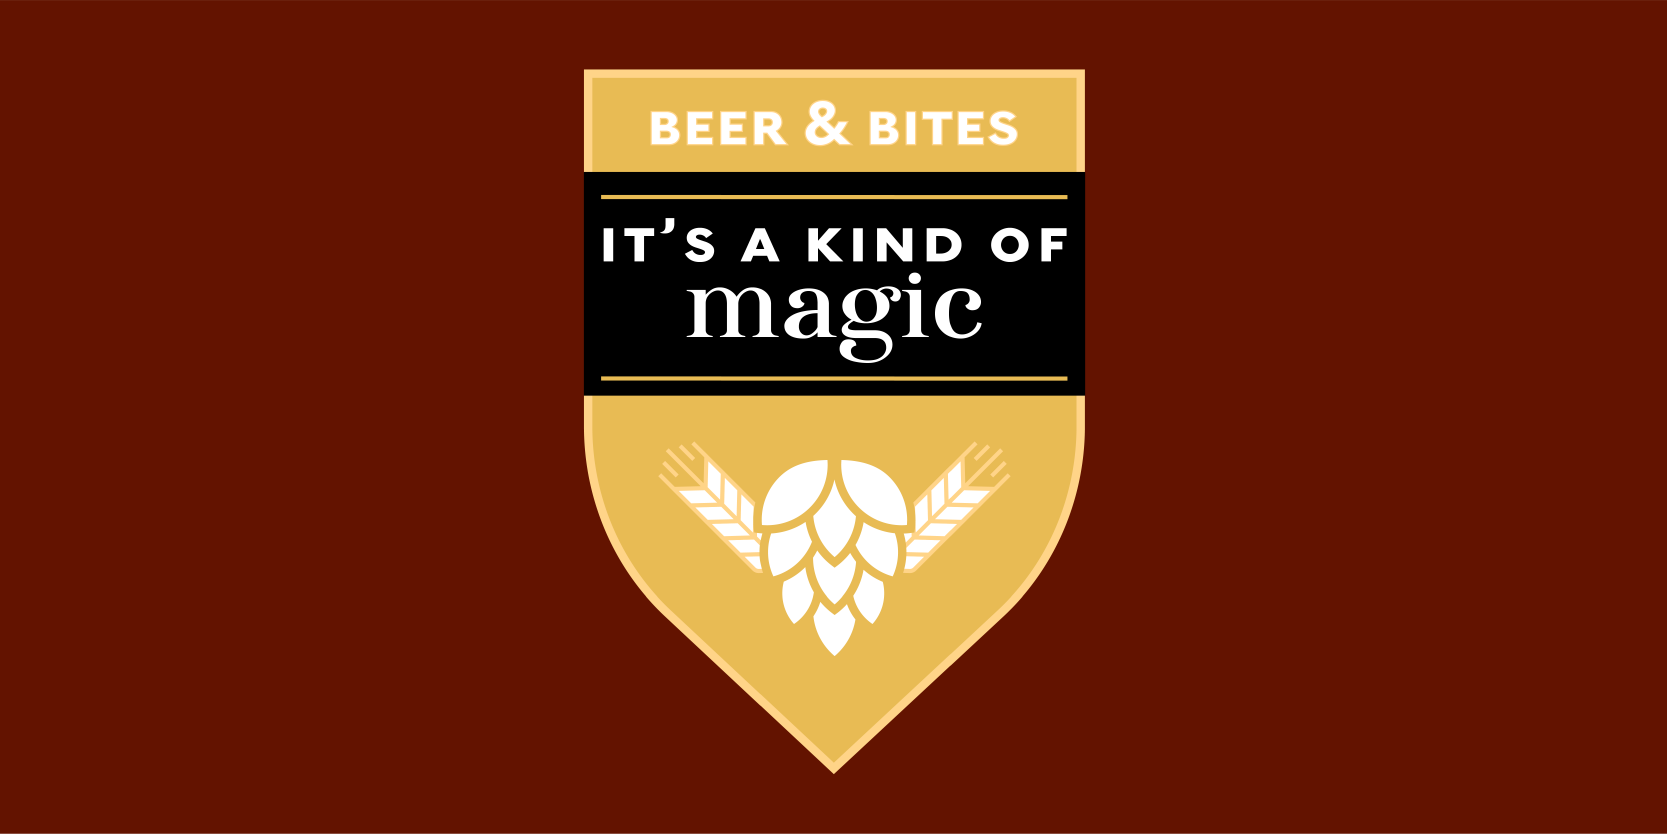 It's A Kind Of Magic | Beer & Bites